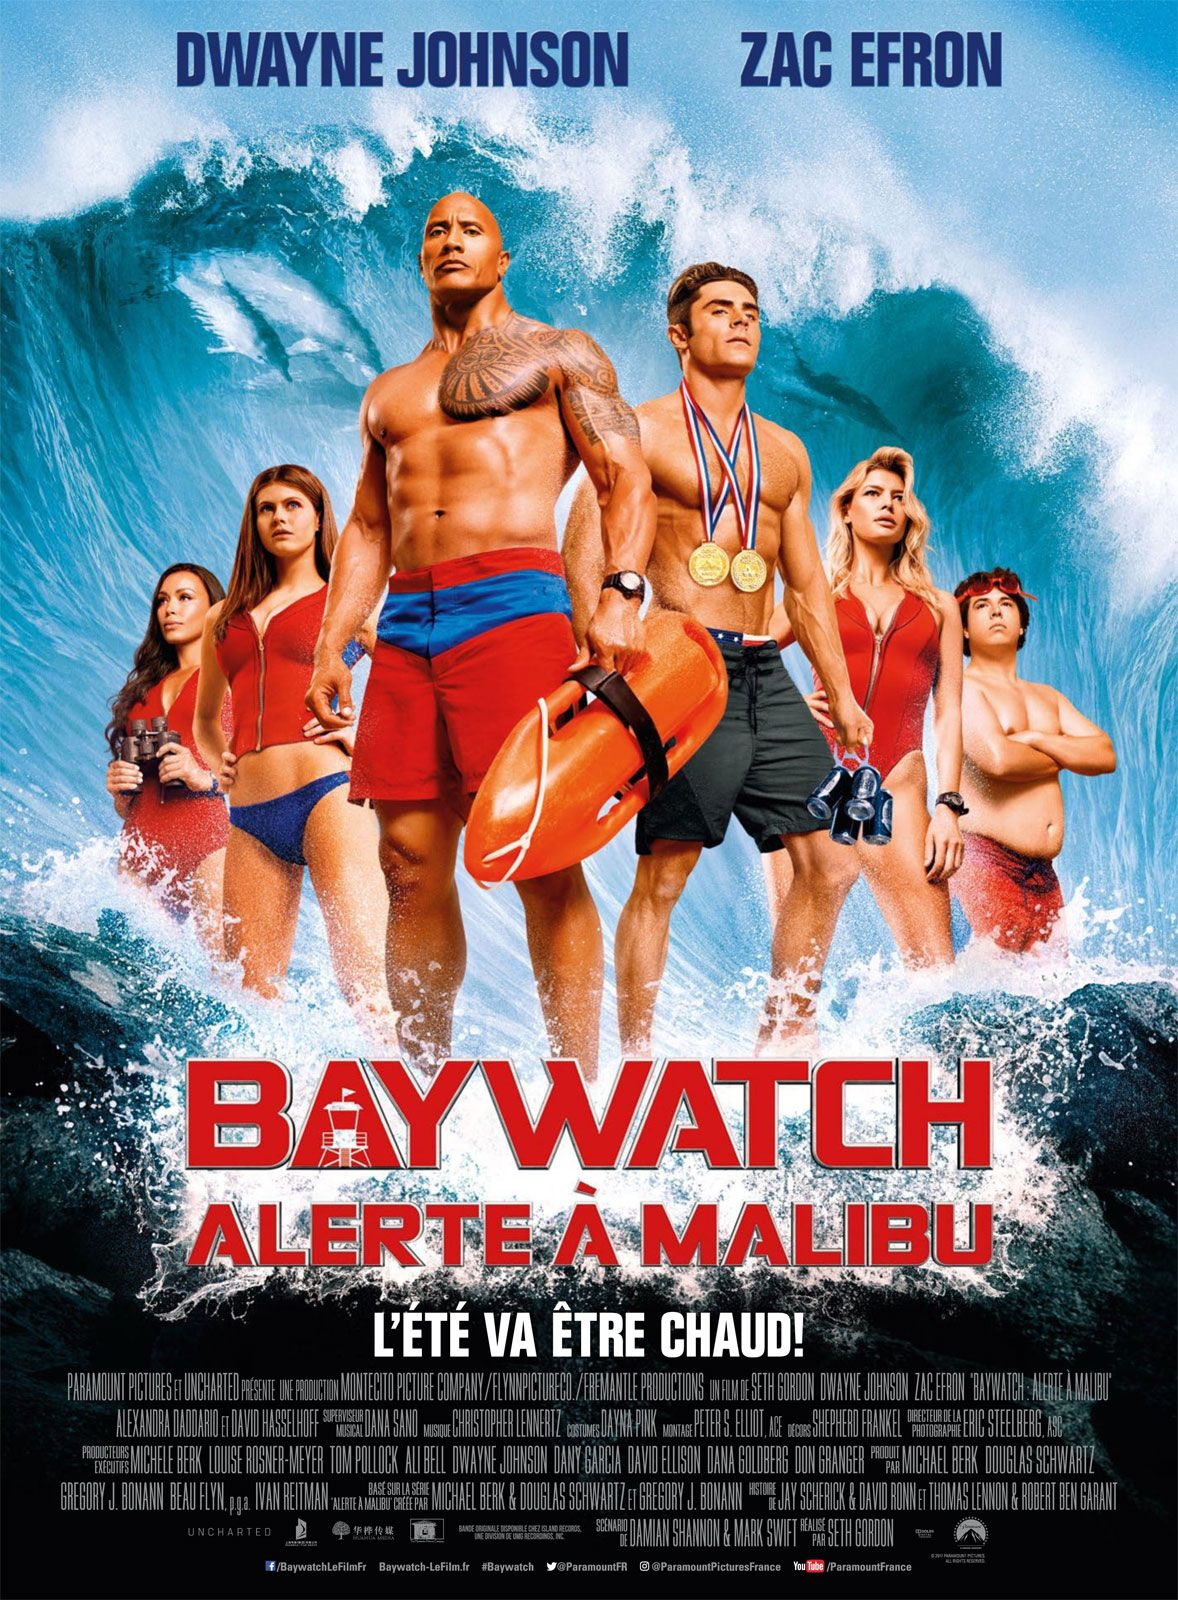 affiches posters et images de baywatch alerte malibu 2017. Black Bedroom Furniture Sets. Home Design Ideas